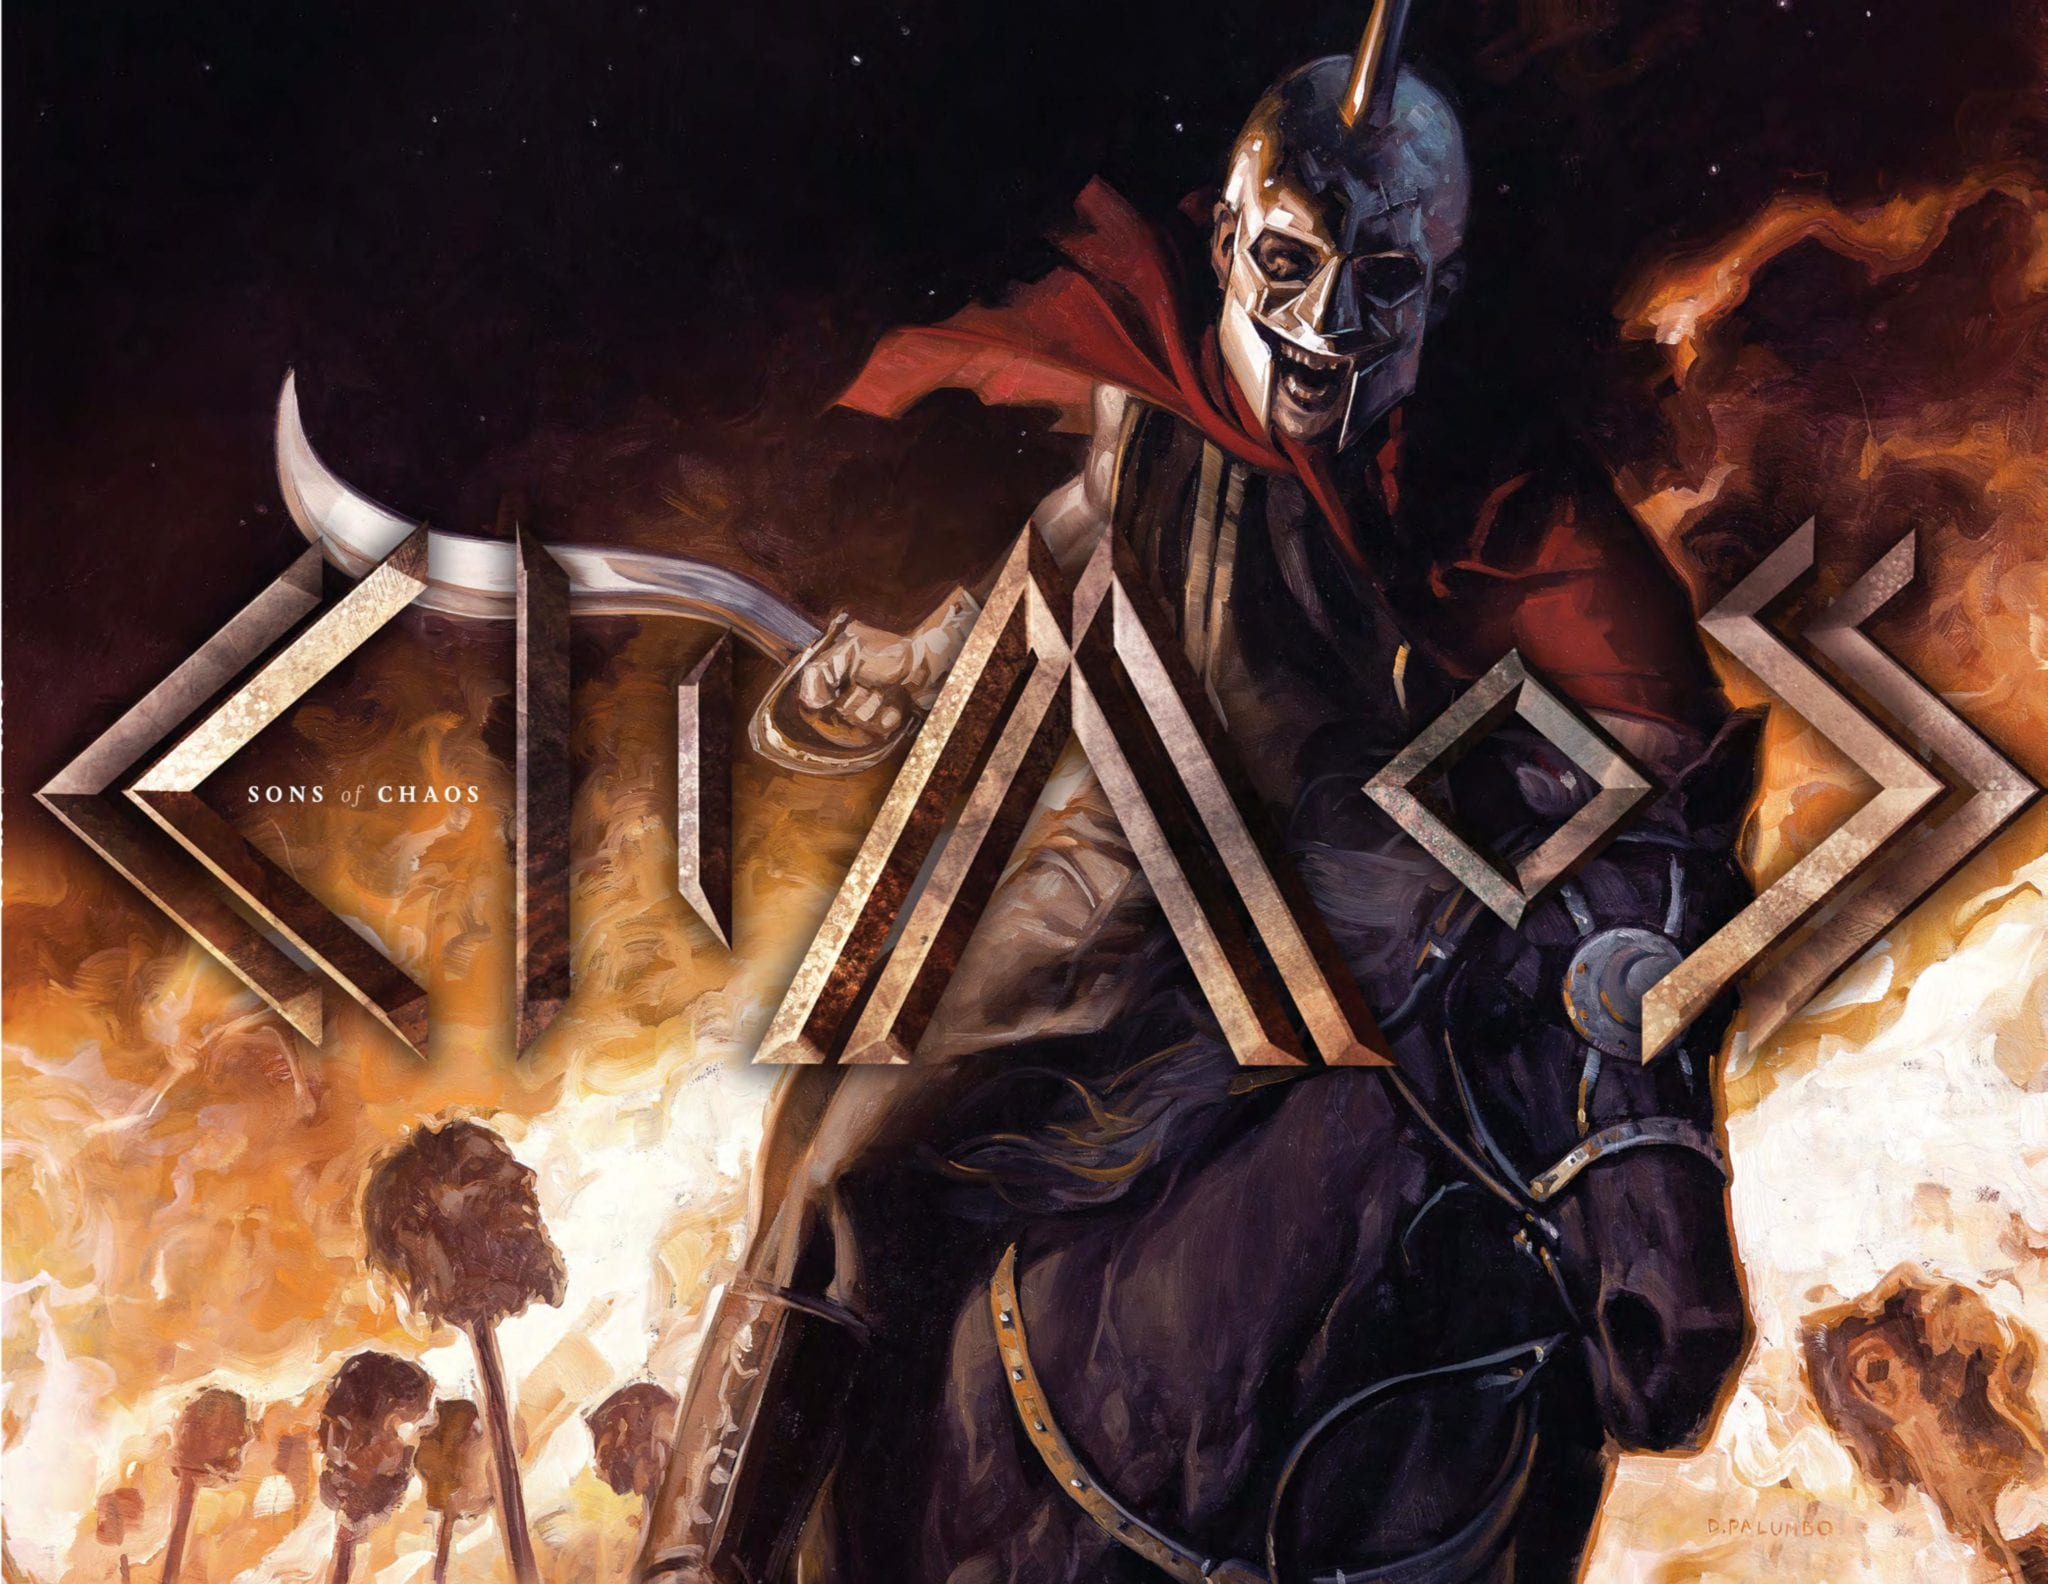 30+ Page Preview Of IDW's SONS OF CHAOS From Chris Jaymes And Alejandro Aragon